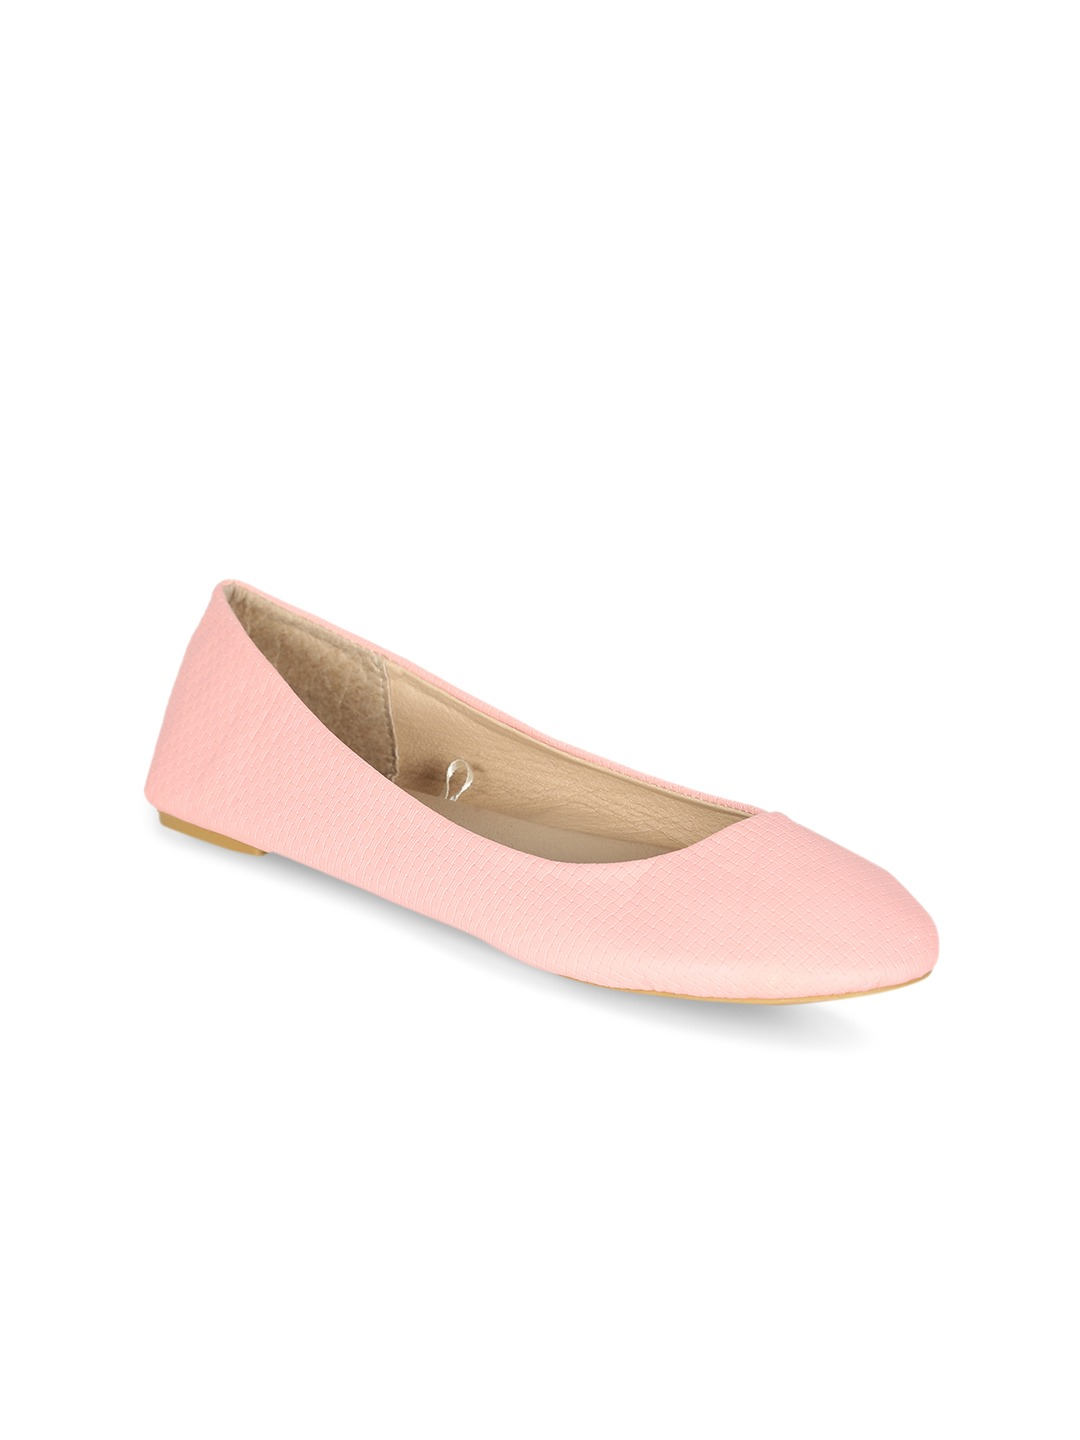 Pink Solid Synthetic Leather Ballerinas